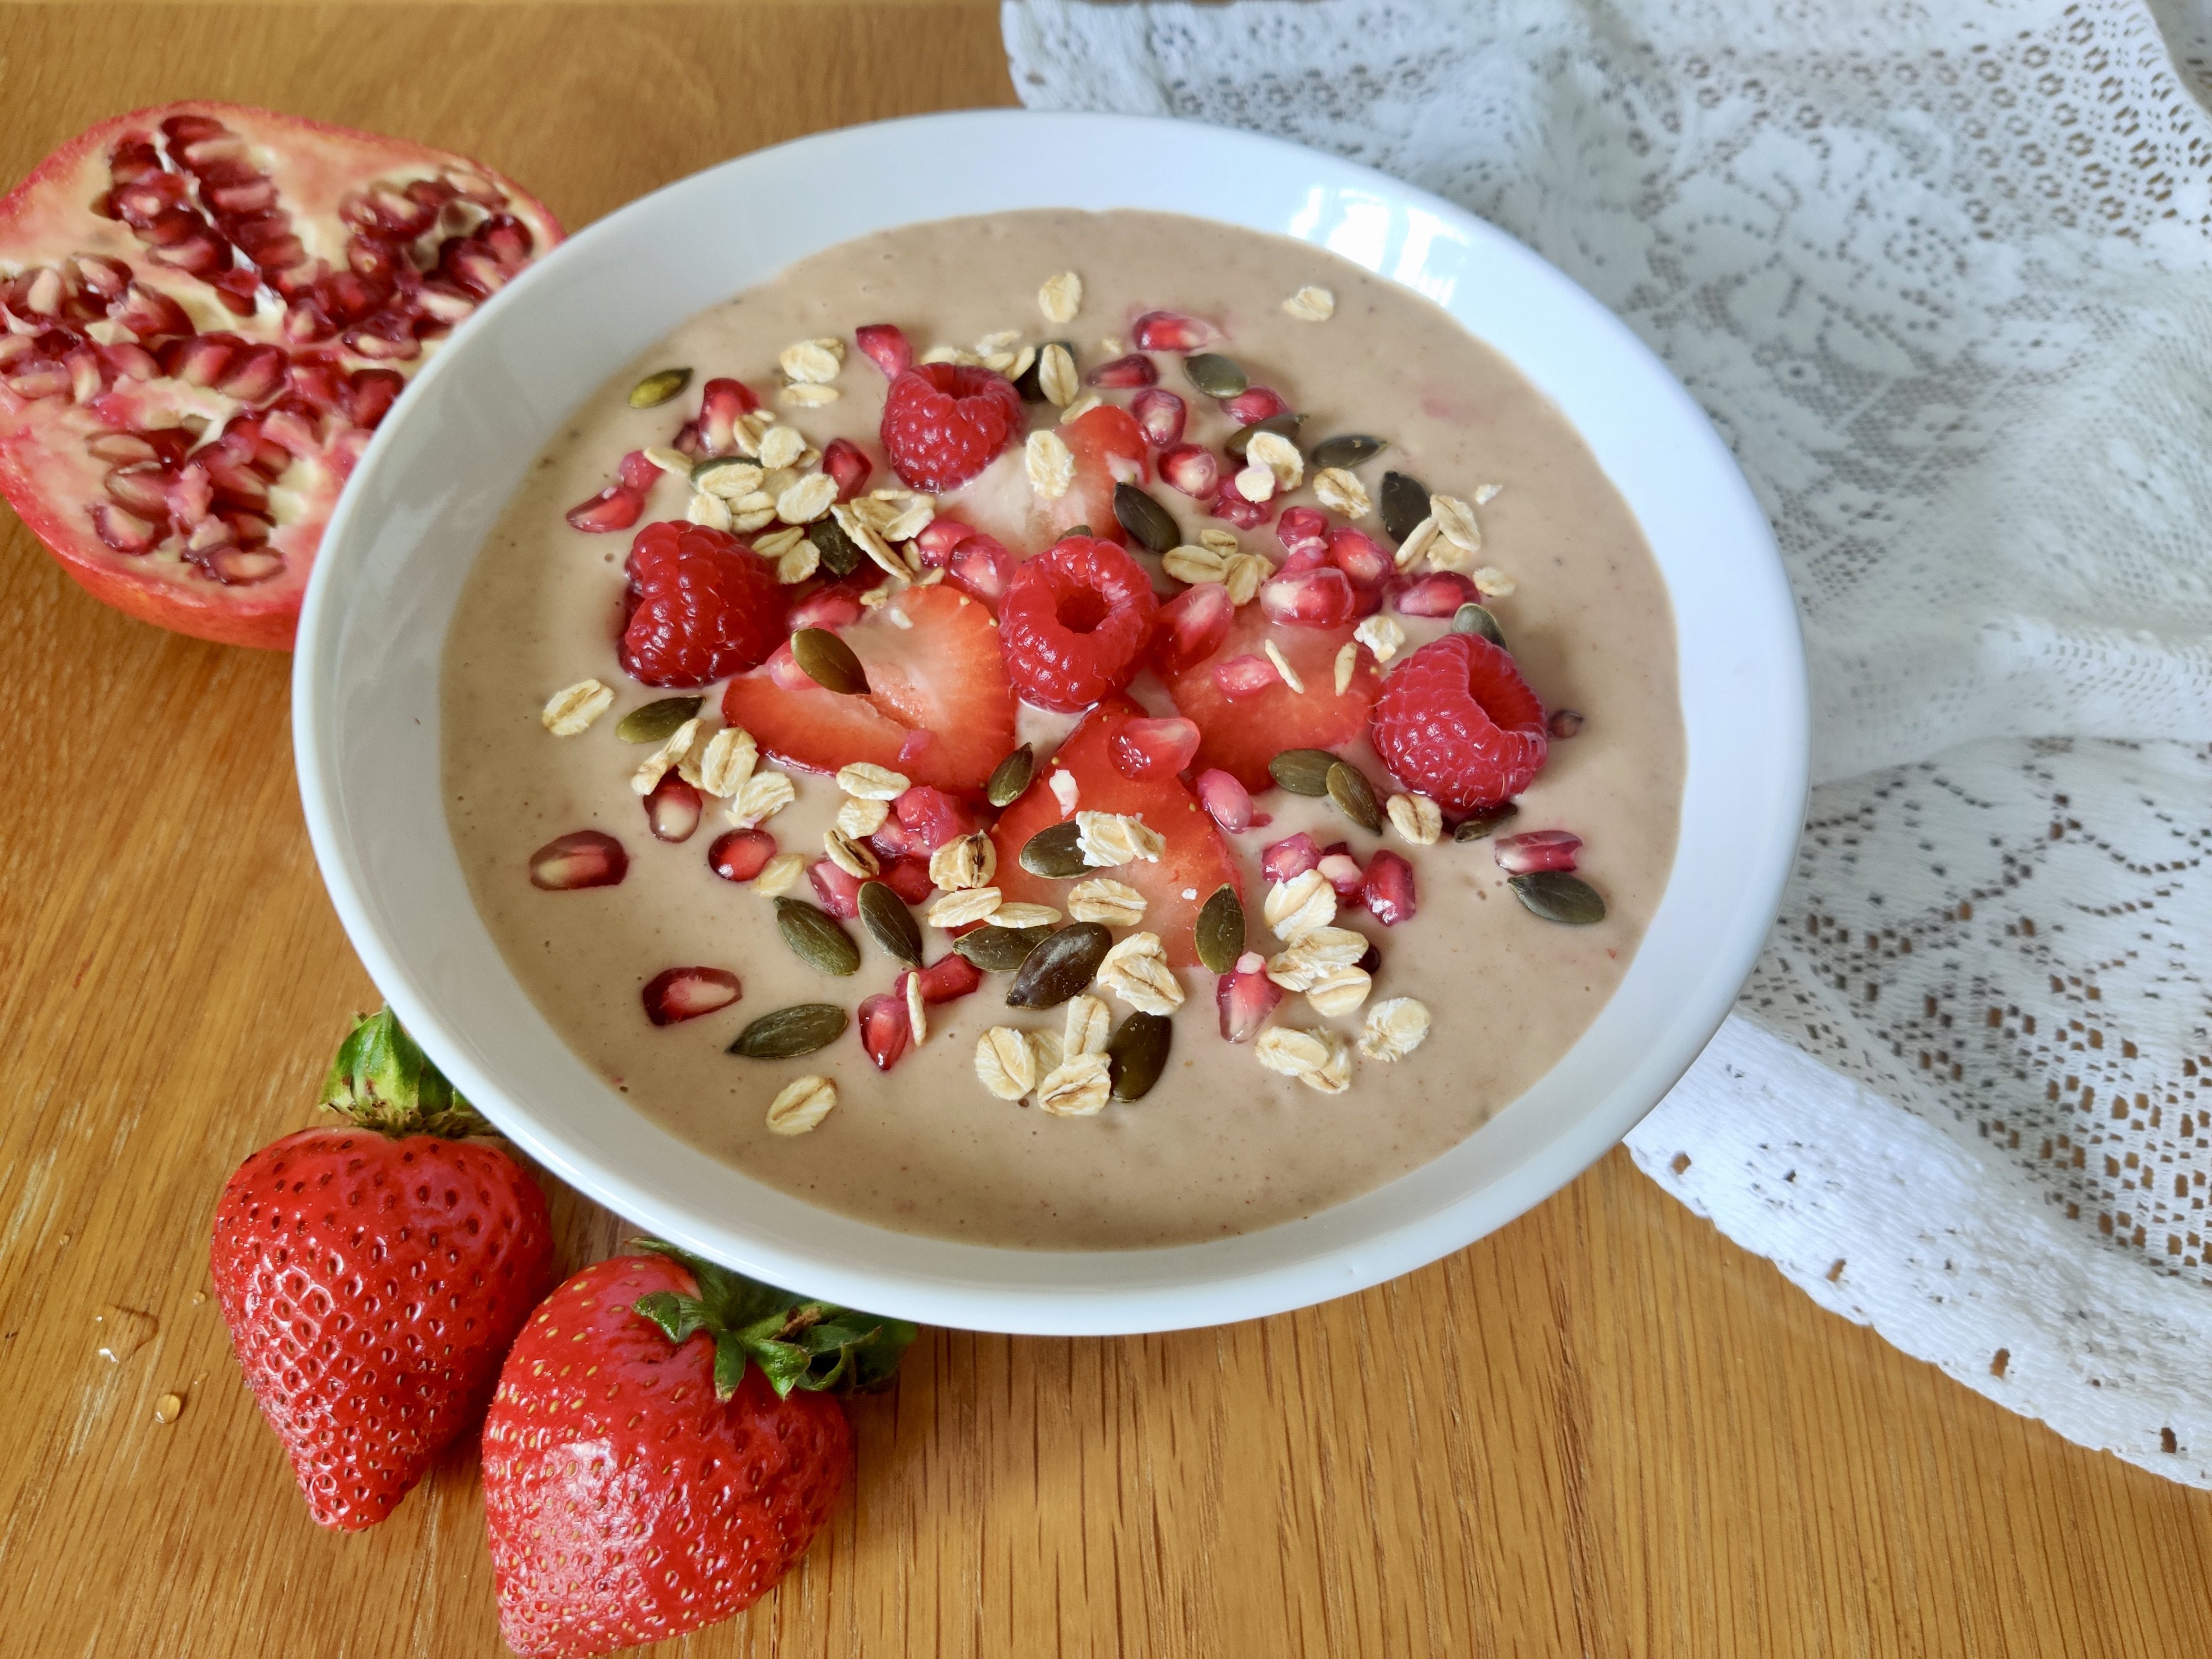 This strawberry smoothie bowl offers a refreshing way to wake up in warm weather.